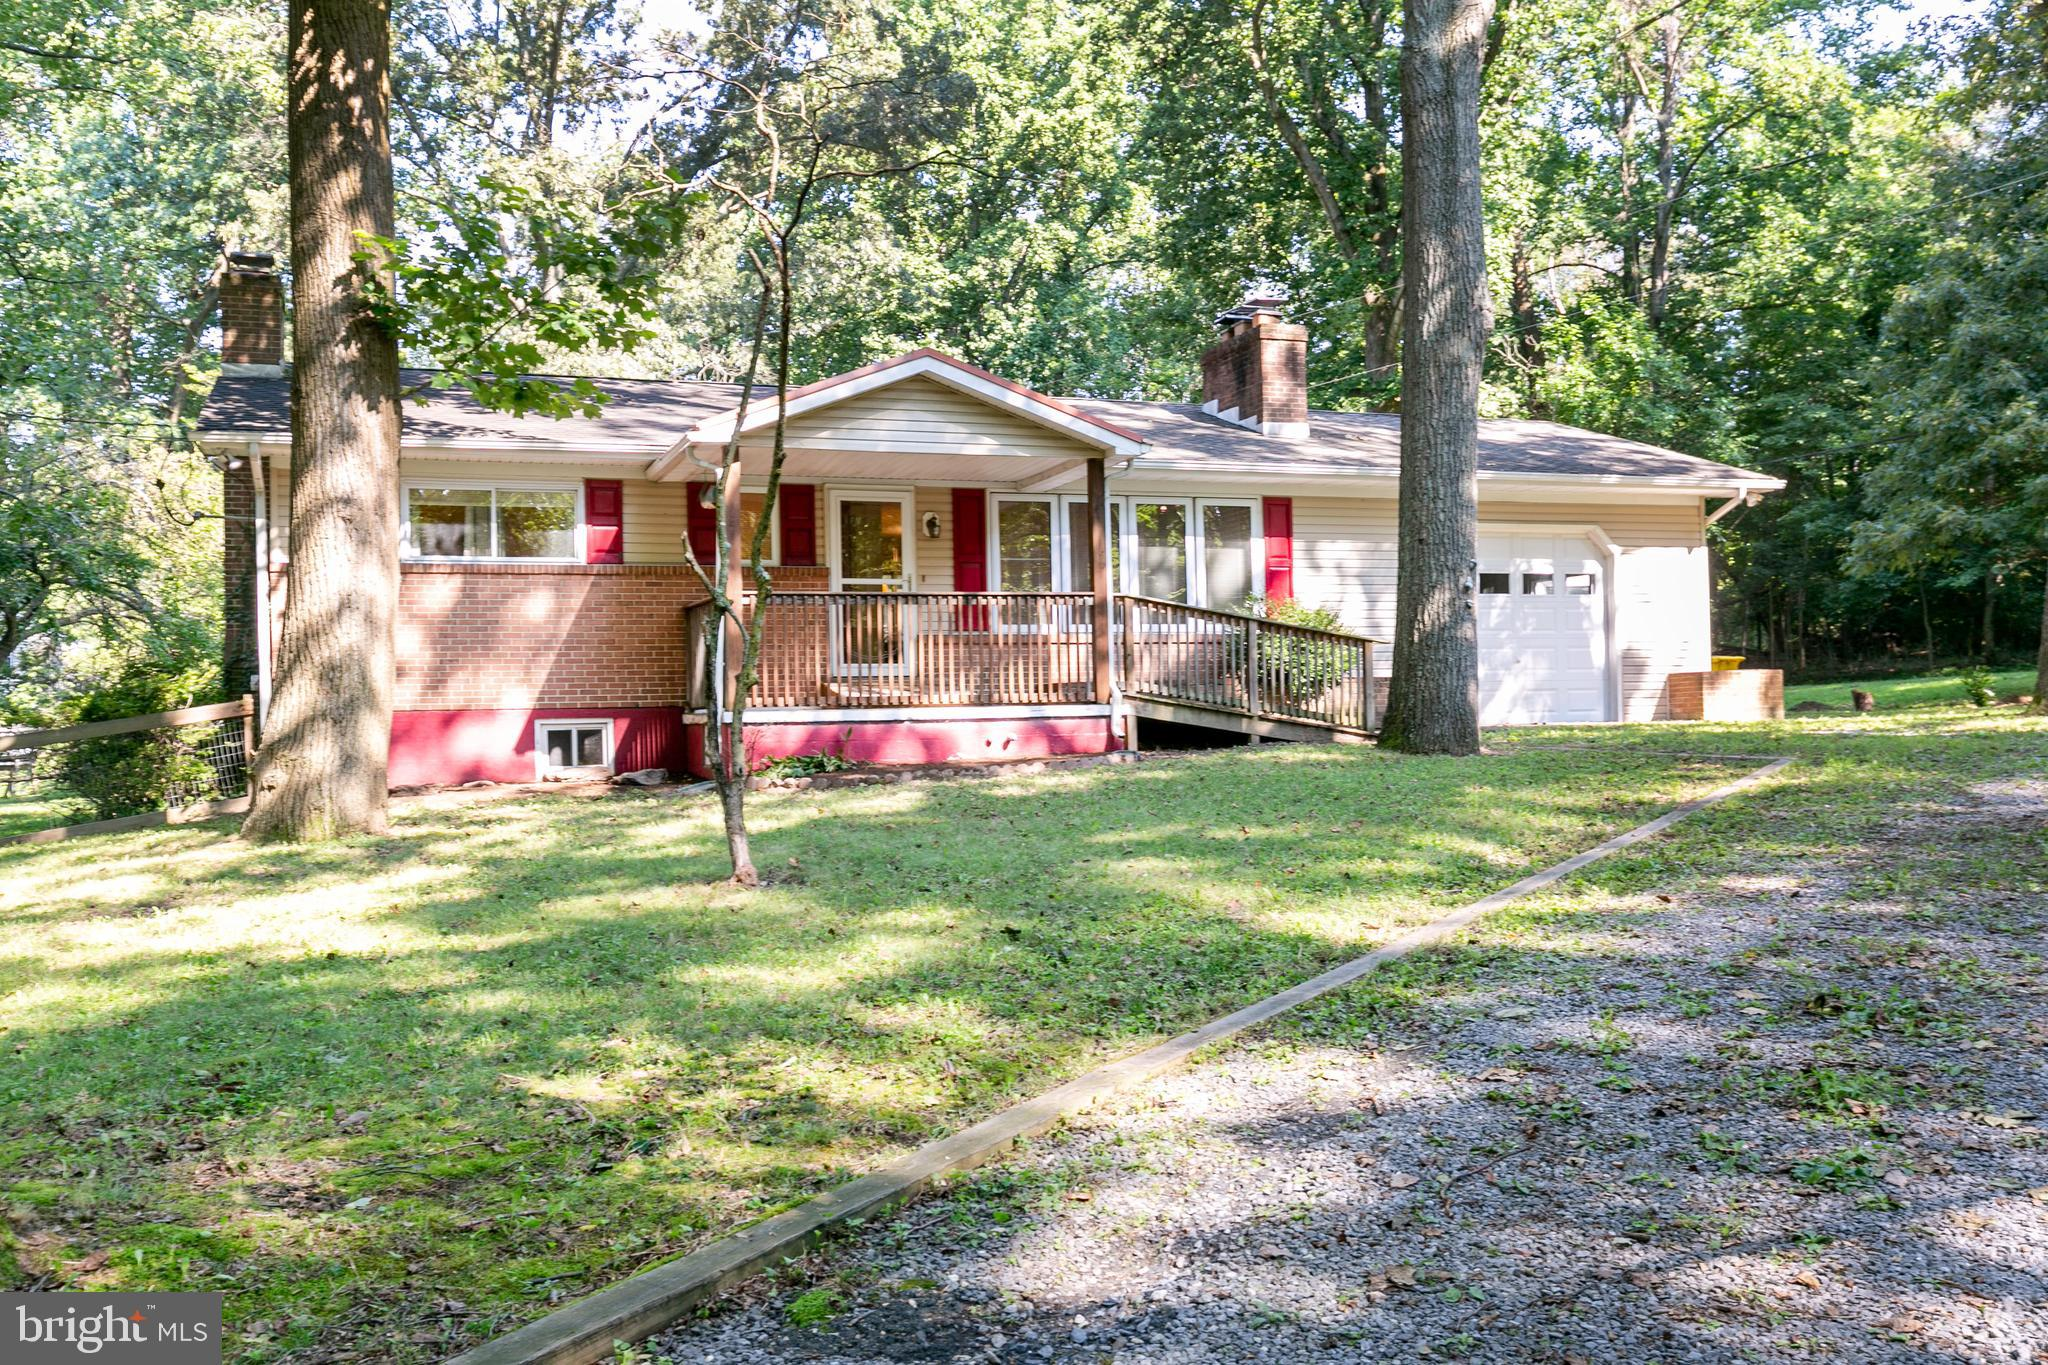 Excellent buying opportunity in a secluded location in Pasadena.  Lots of living space on main level